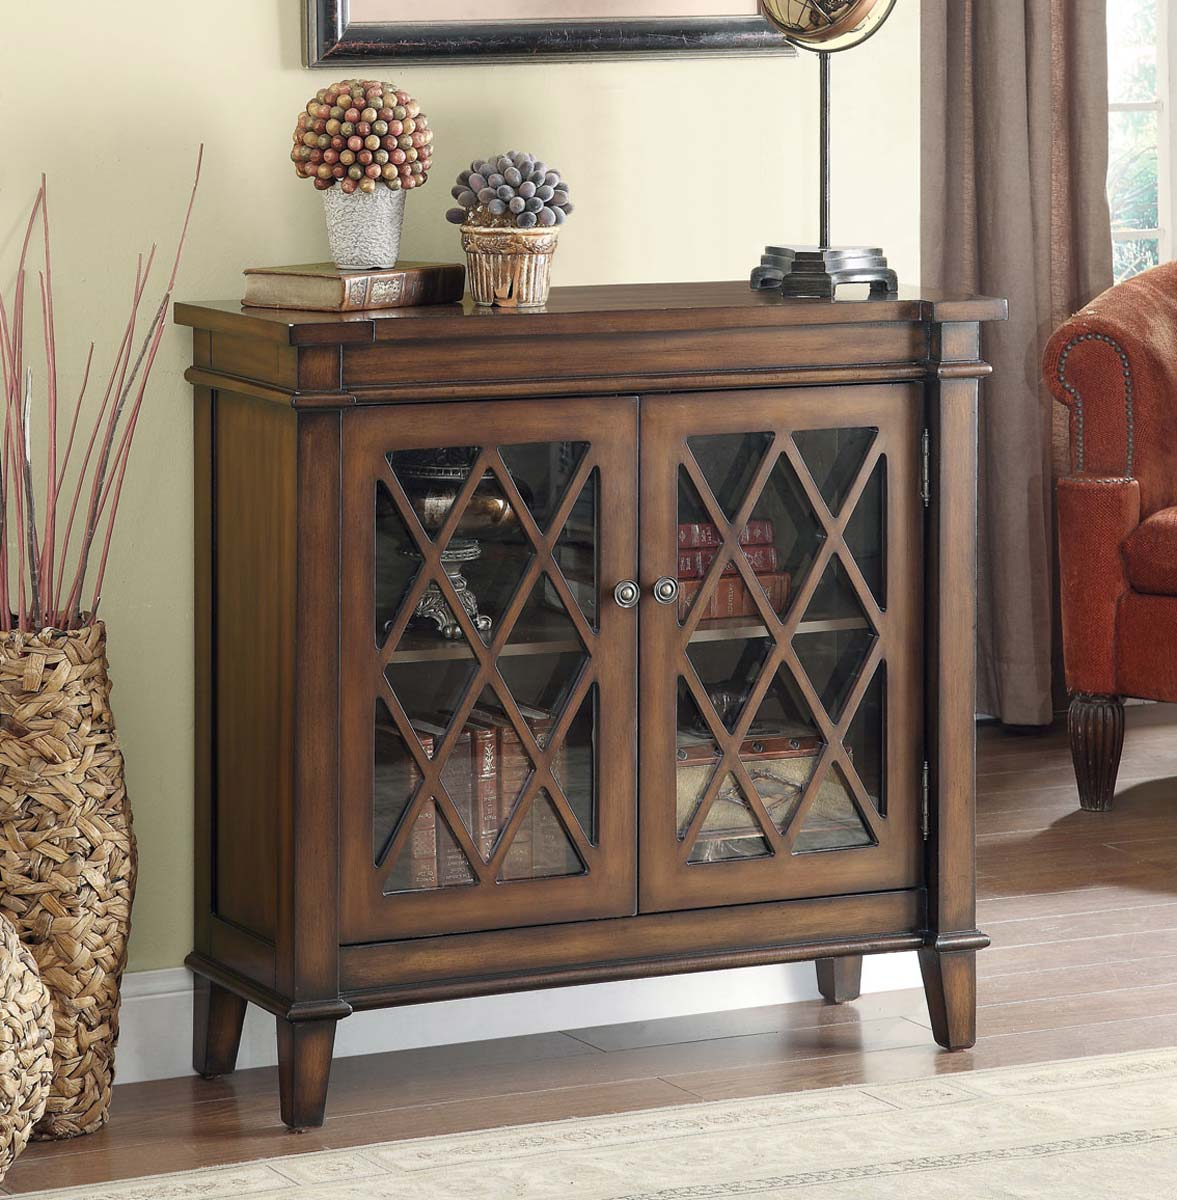 Coaster 950348 Accent Cabinet - Warm Brown